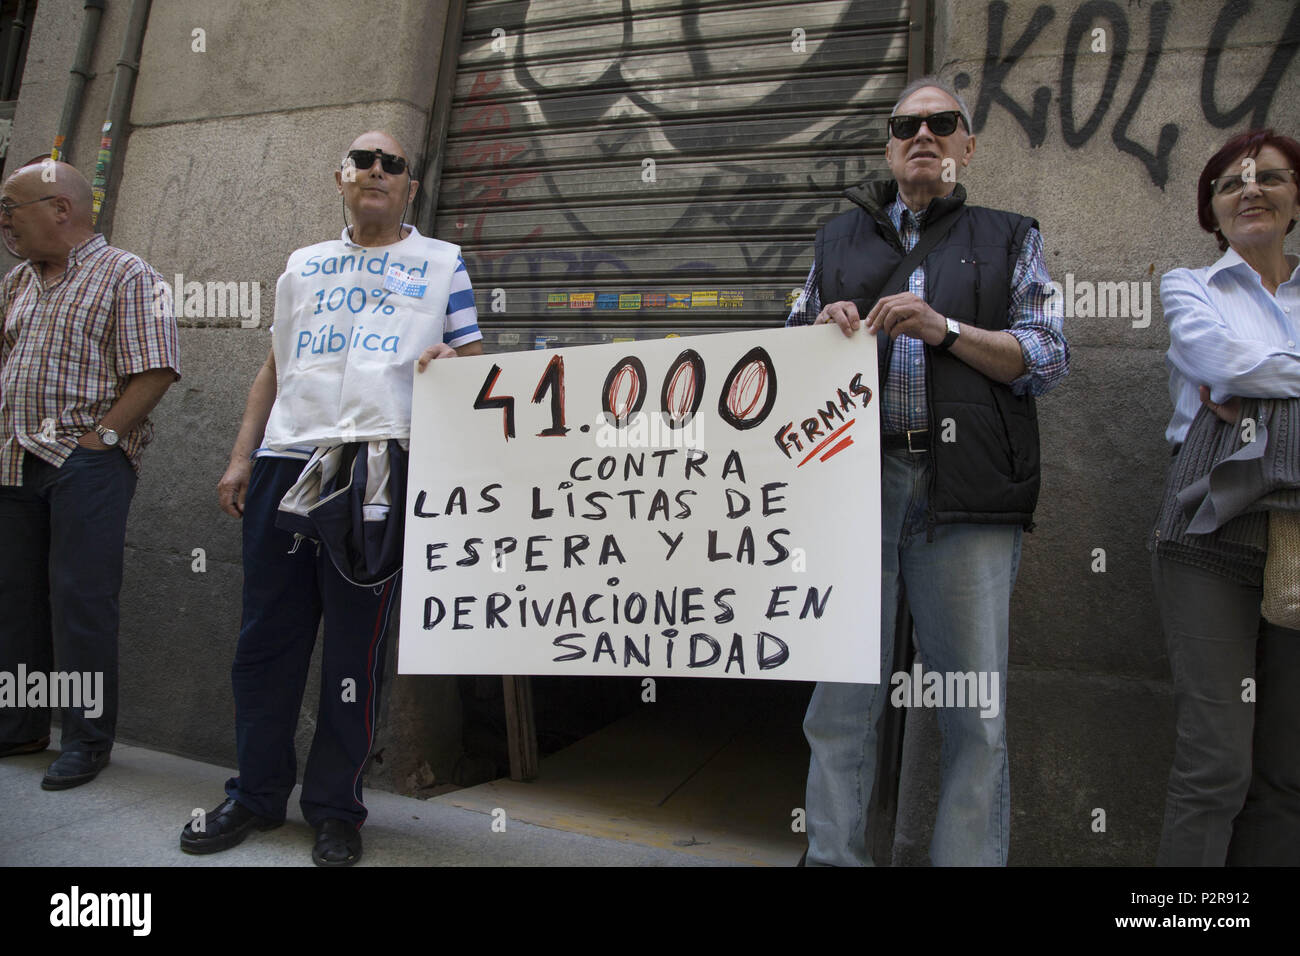 June 14, 2018 - Madrid, Spain - 41,000 signatures against waiting lists and health referrals..Delivery of 41 000 signatures against waiting lists and referrals from public health to private healthcare. (Credit Image: © Lito Lizana/SOPA Images via ZUMA Wire) - Stock Image